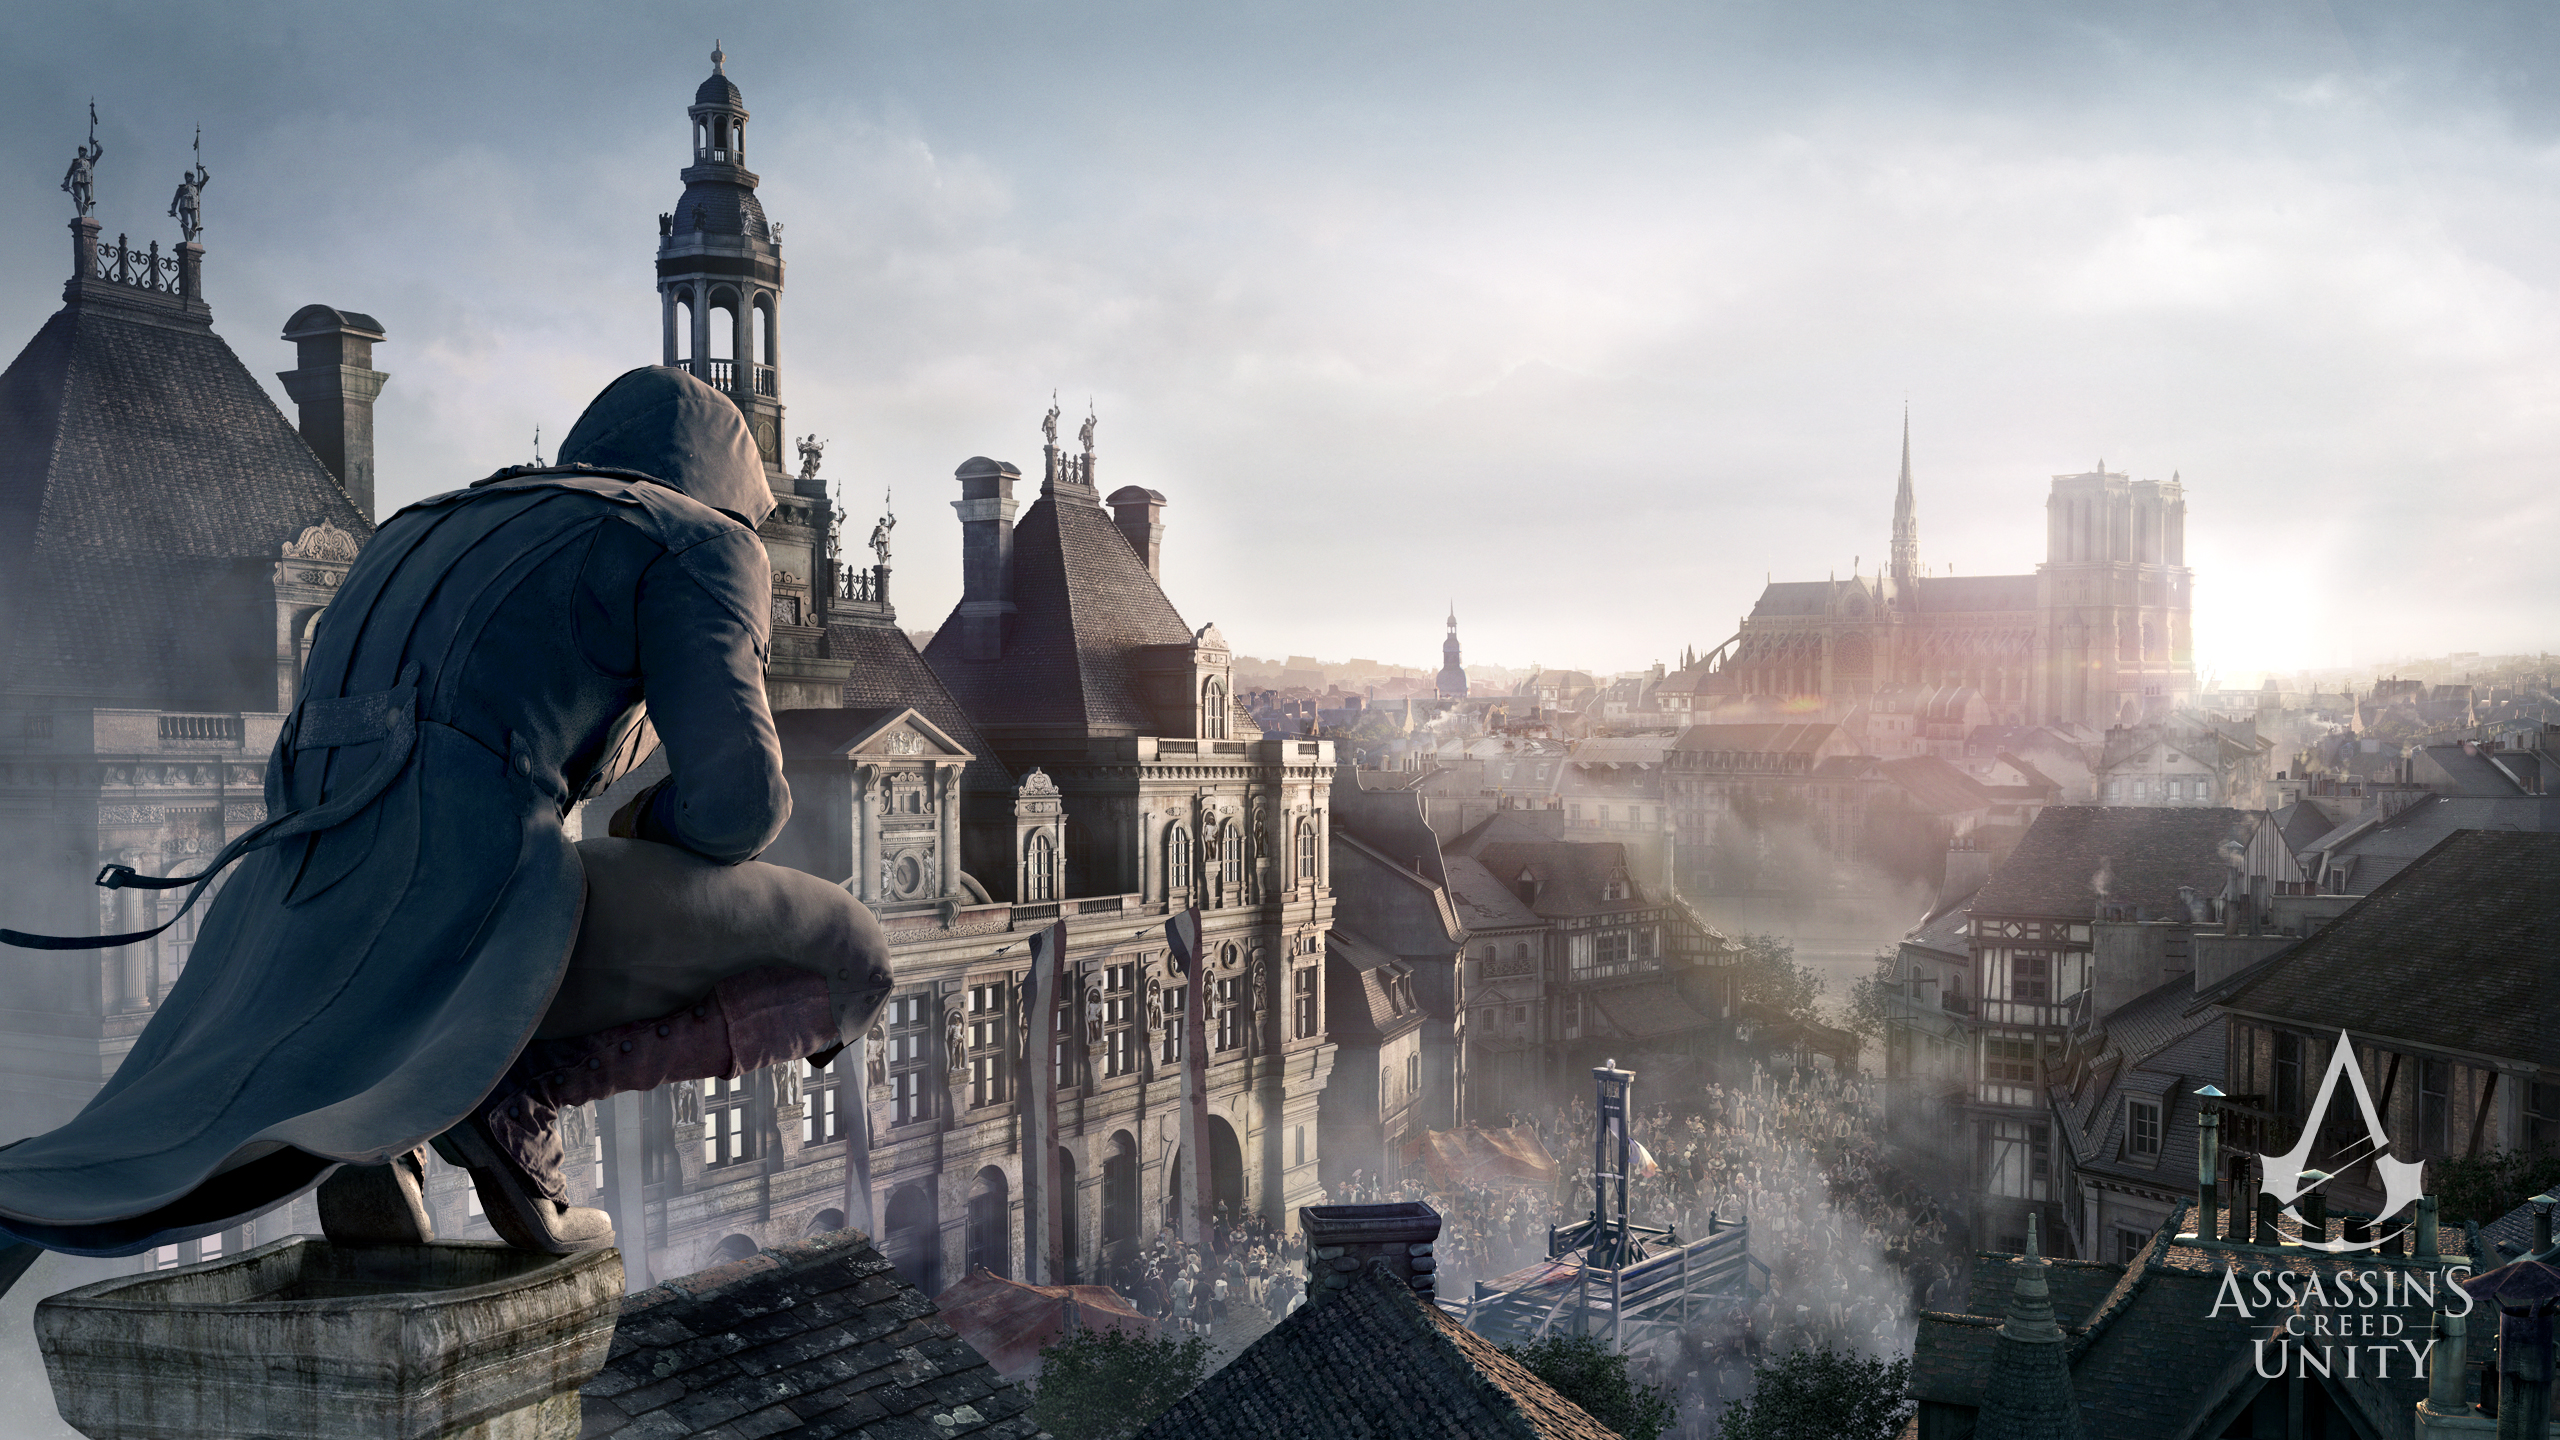 Wiki Assassins Creed Unity Miastogierpl